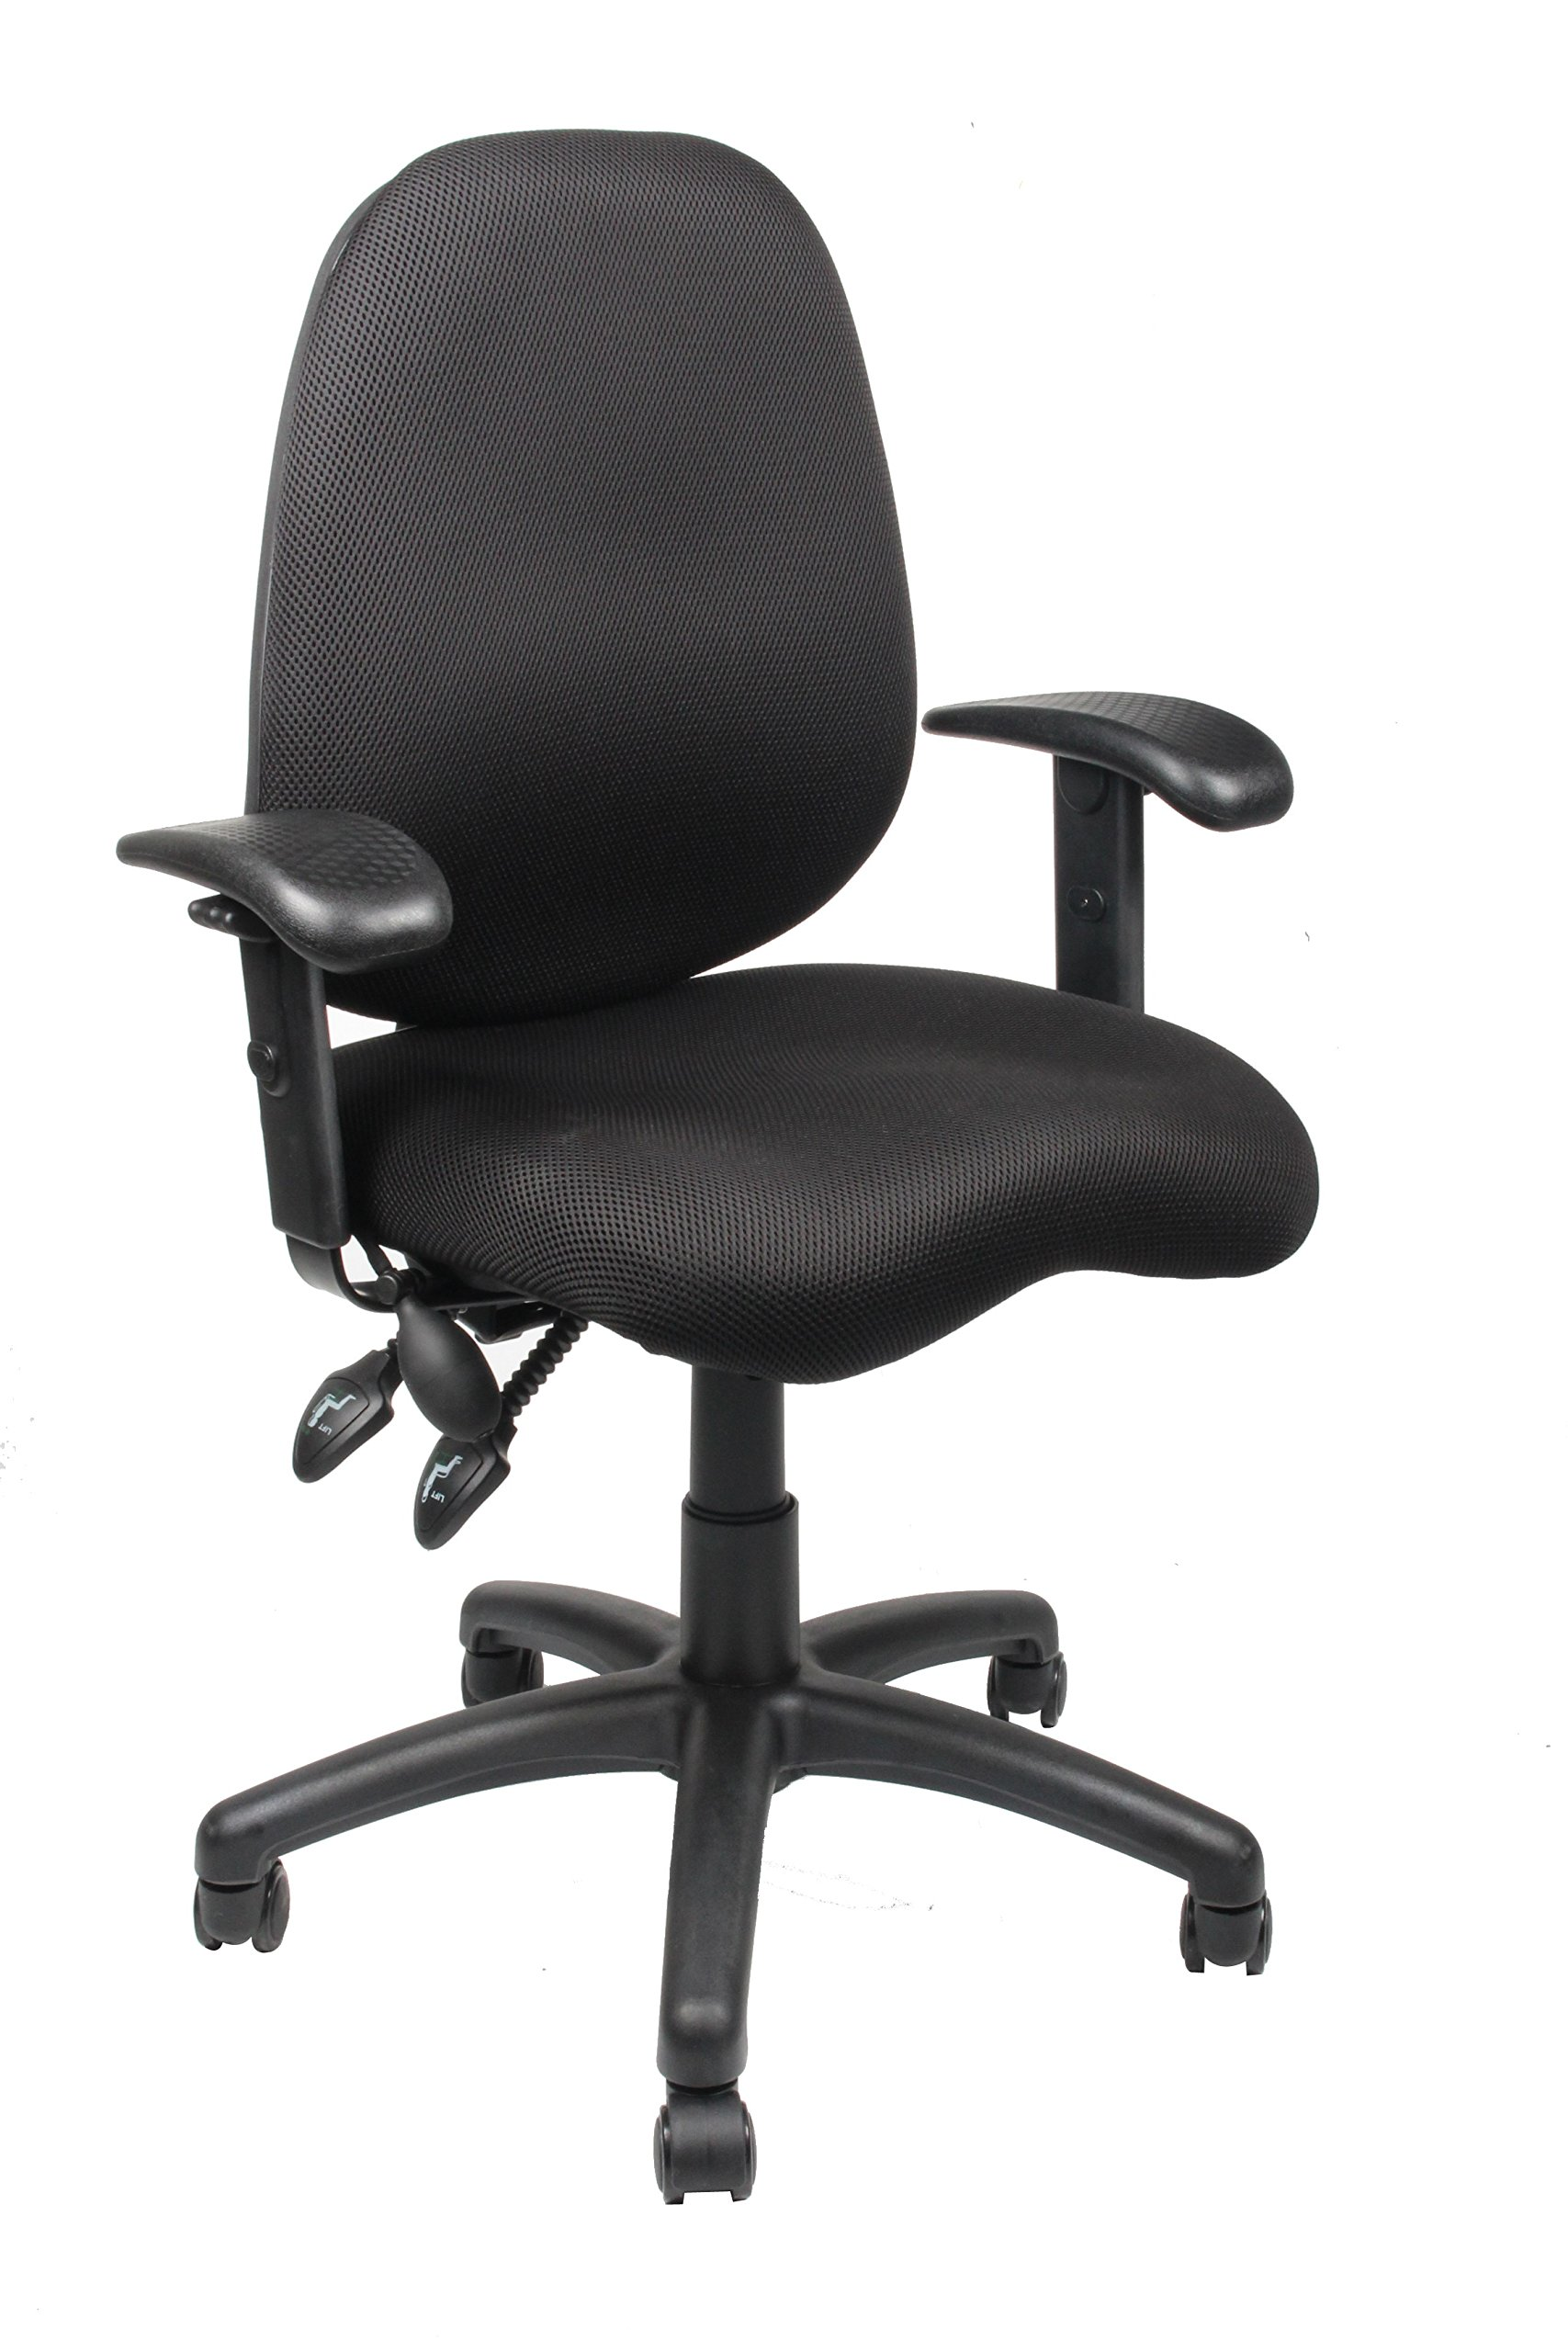 Office Factor Mesh Office Chair, Ergonomic Synchro Mechanism Office Task Computer Desk Chair. Double Handle Synchronized Mechanism With Adjustable Arm Rest and Lumbar Support